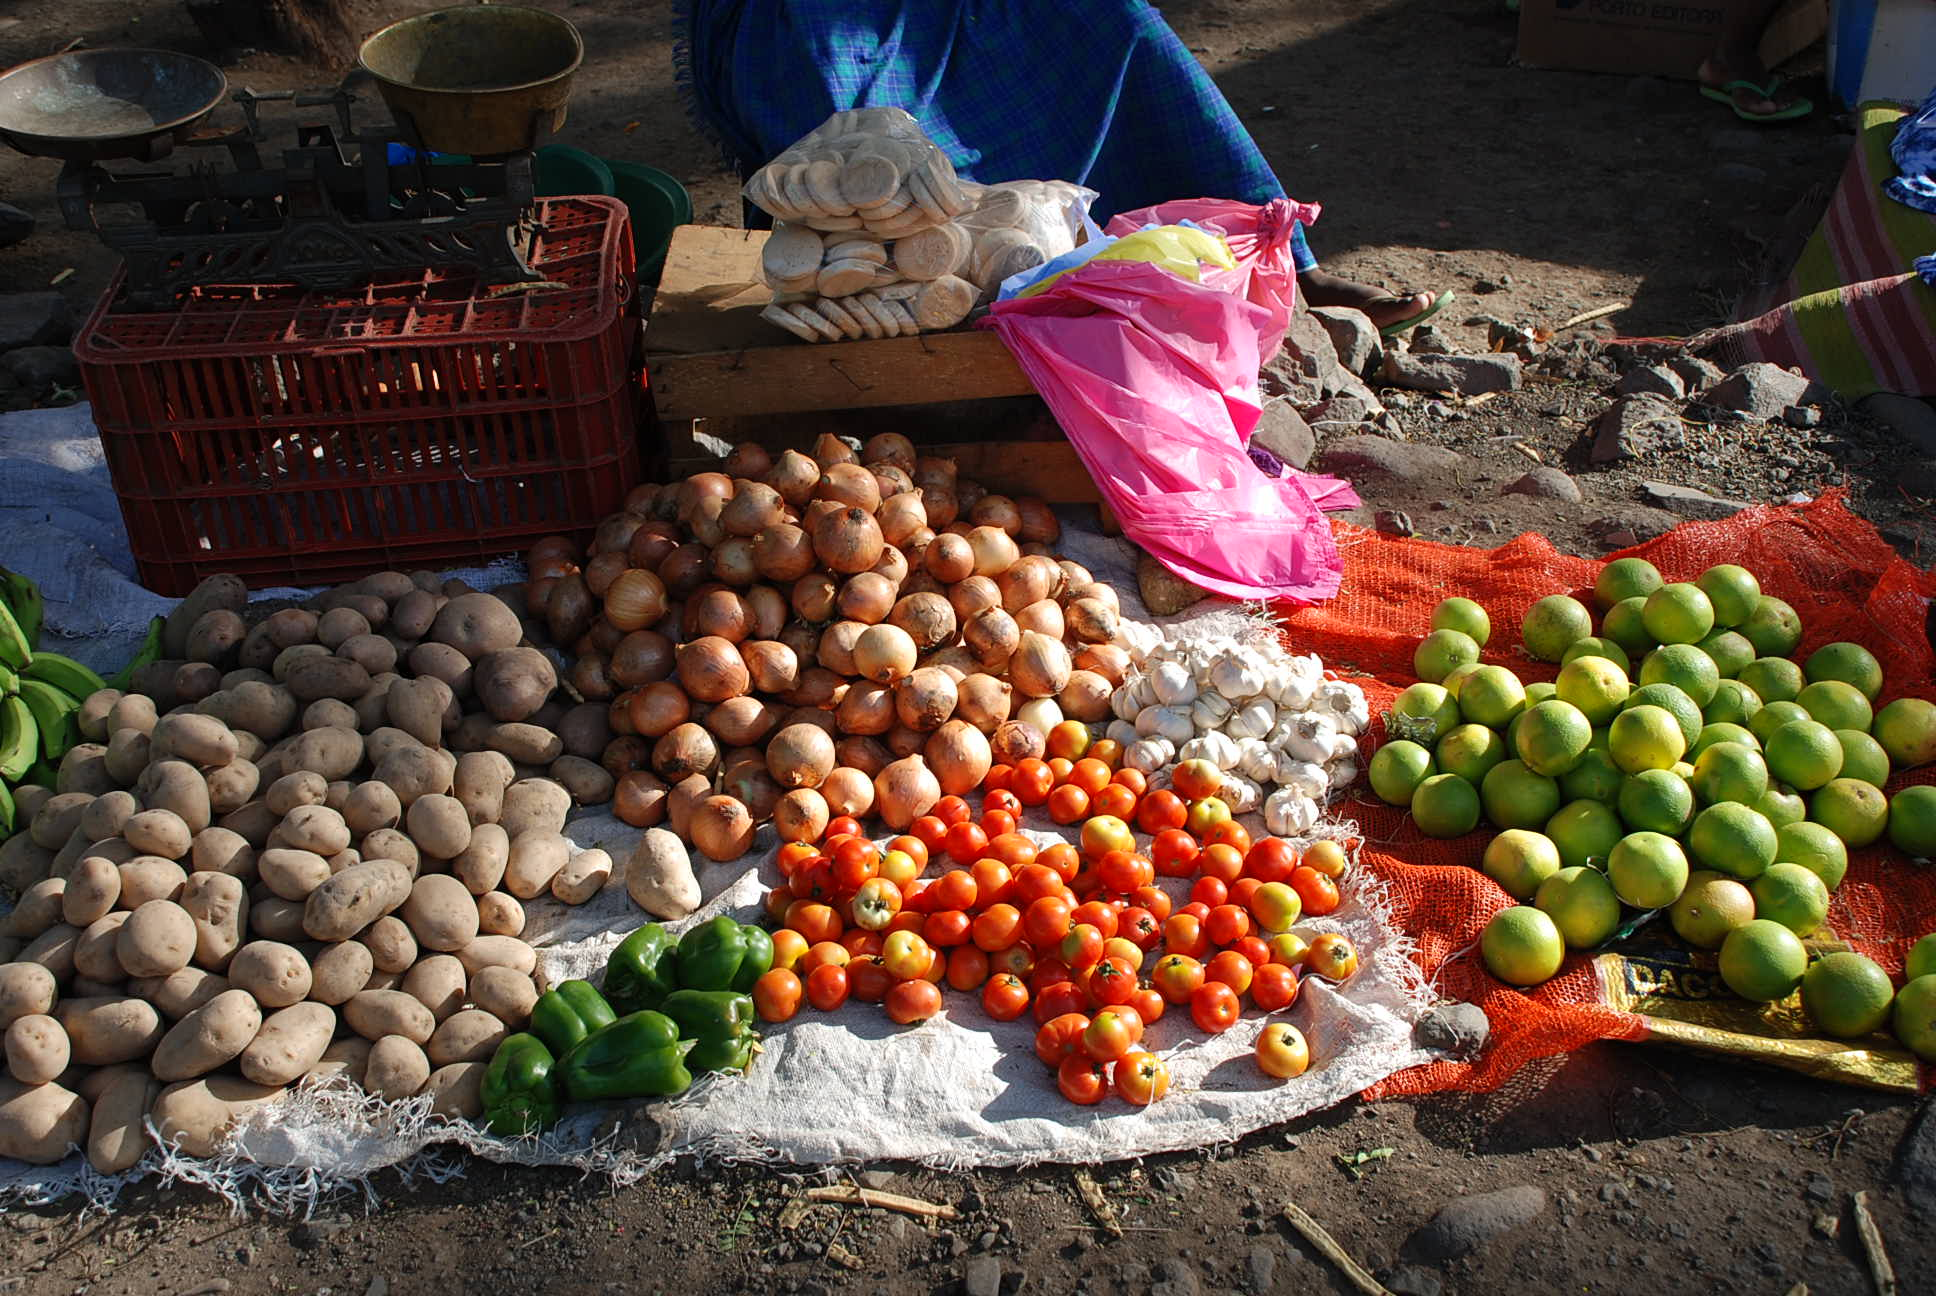 Vegetables in street market in Cape Verde